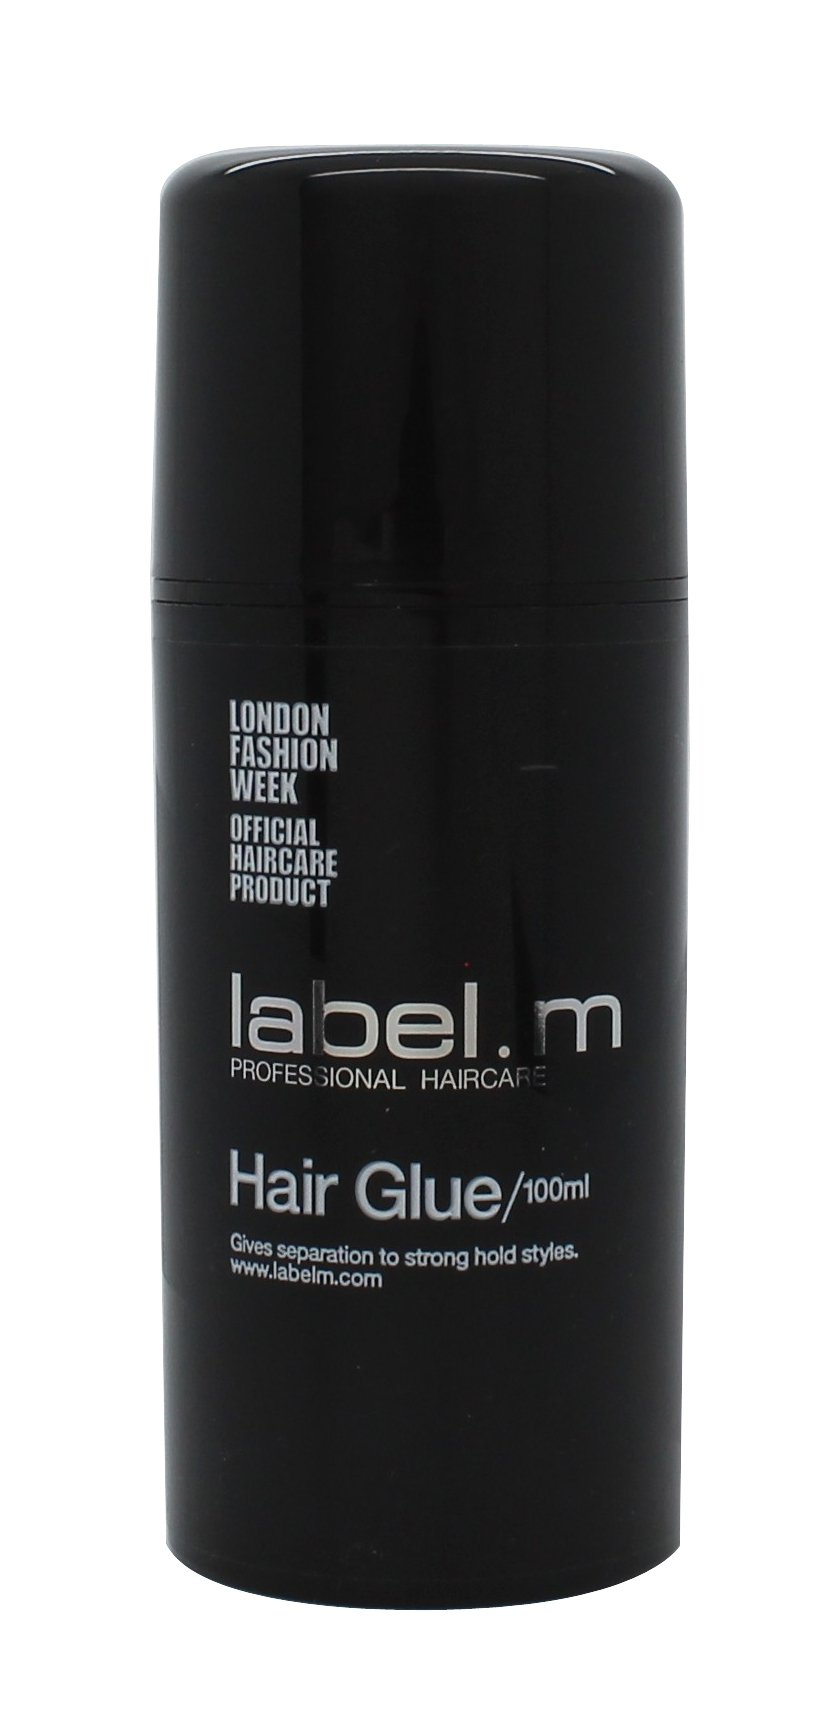 Label.m Glue by Toni & Guy 3.4 Ounce